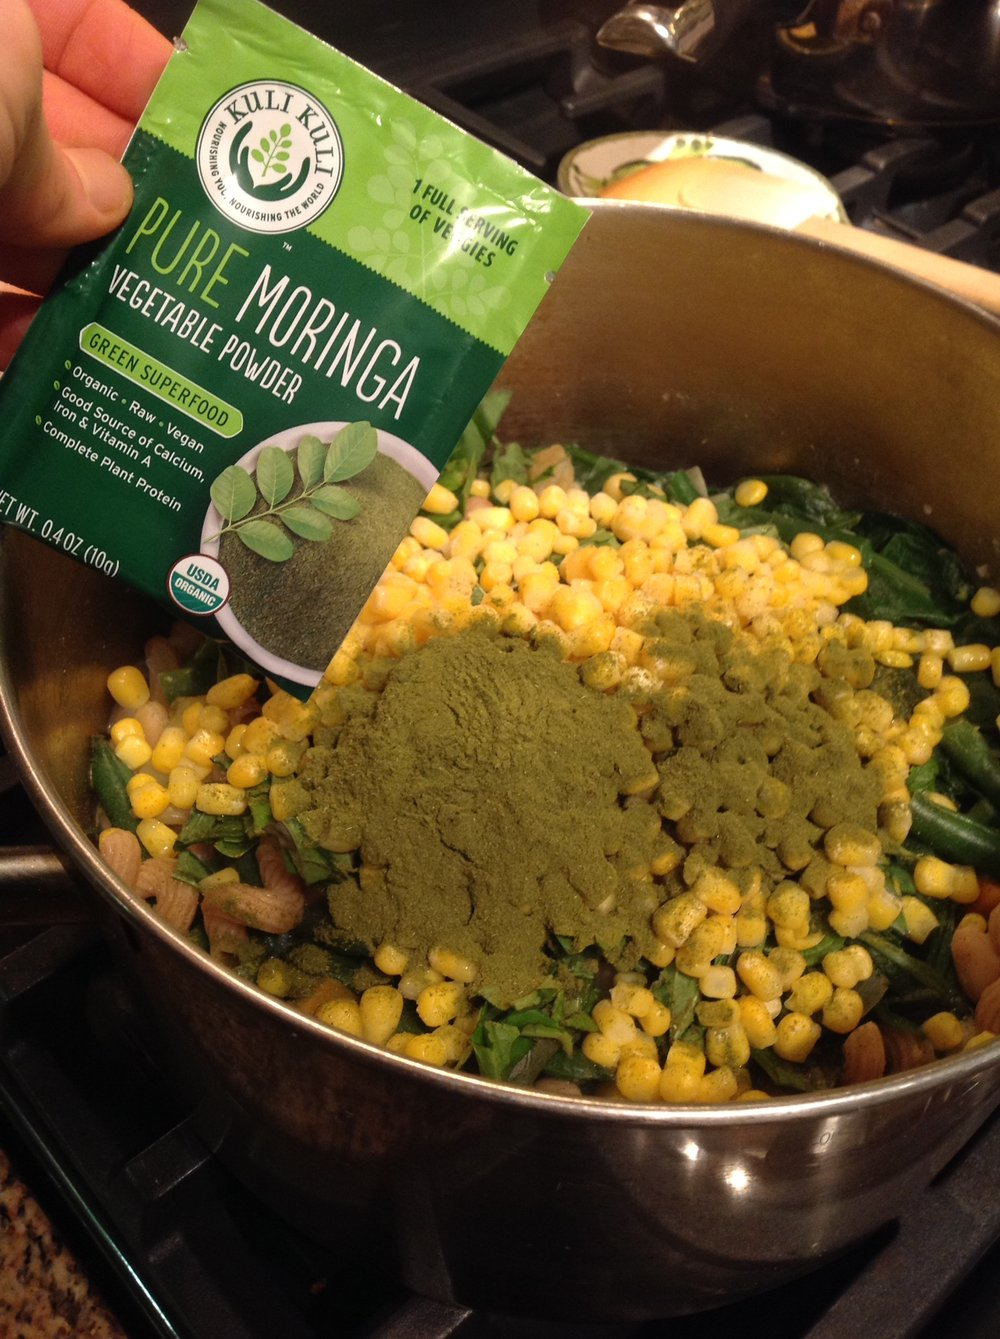 Chef's Plant-Based Tip: Green Moringa powder adds healthy plant-based vegan protein, calcium, and iron to this soup recipe